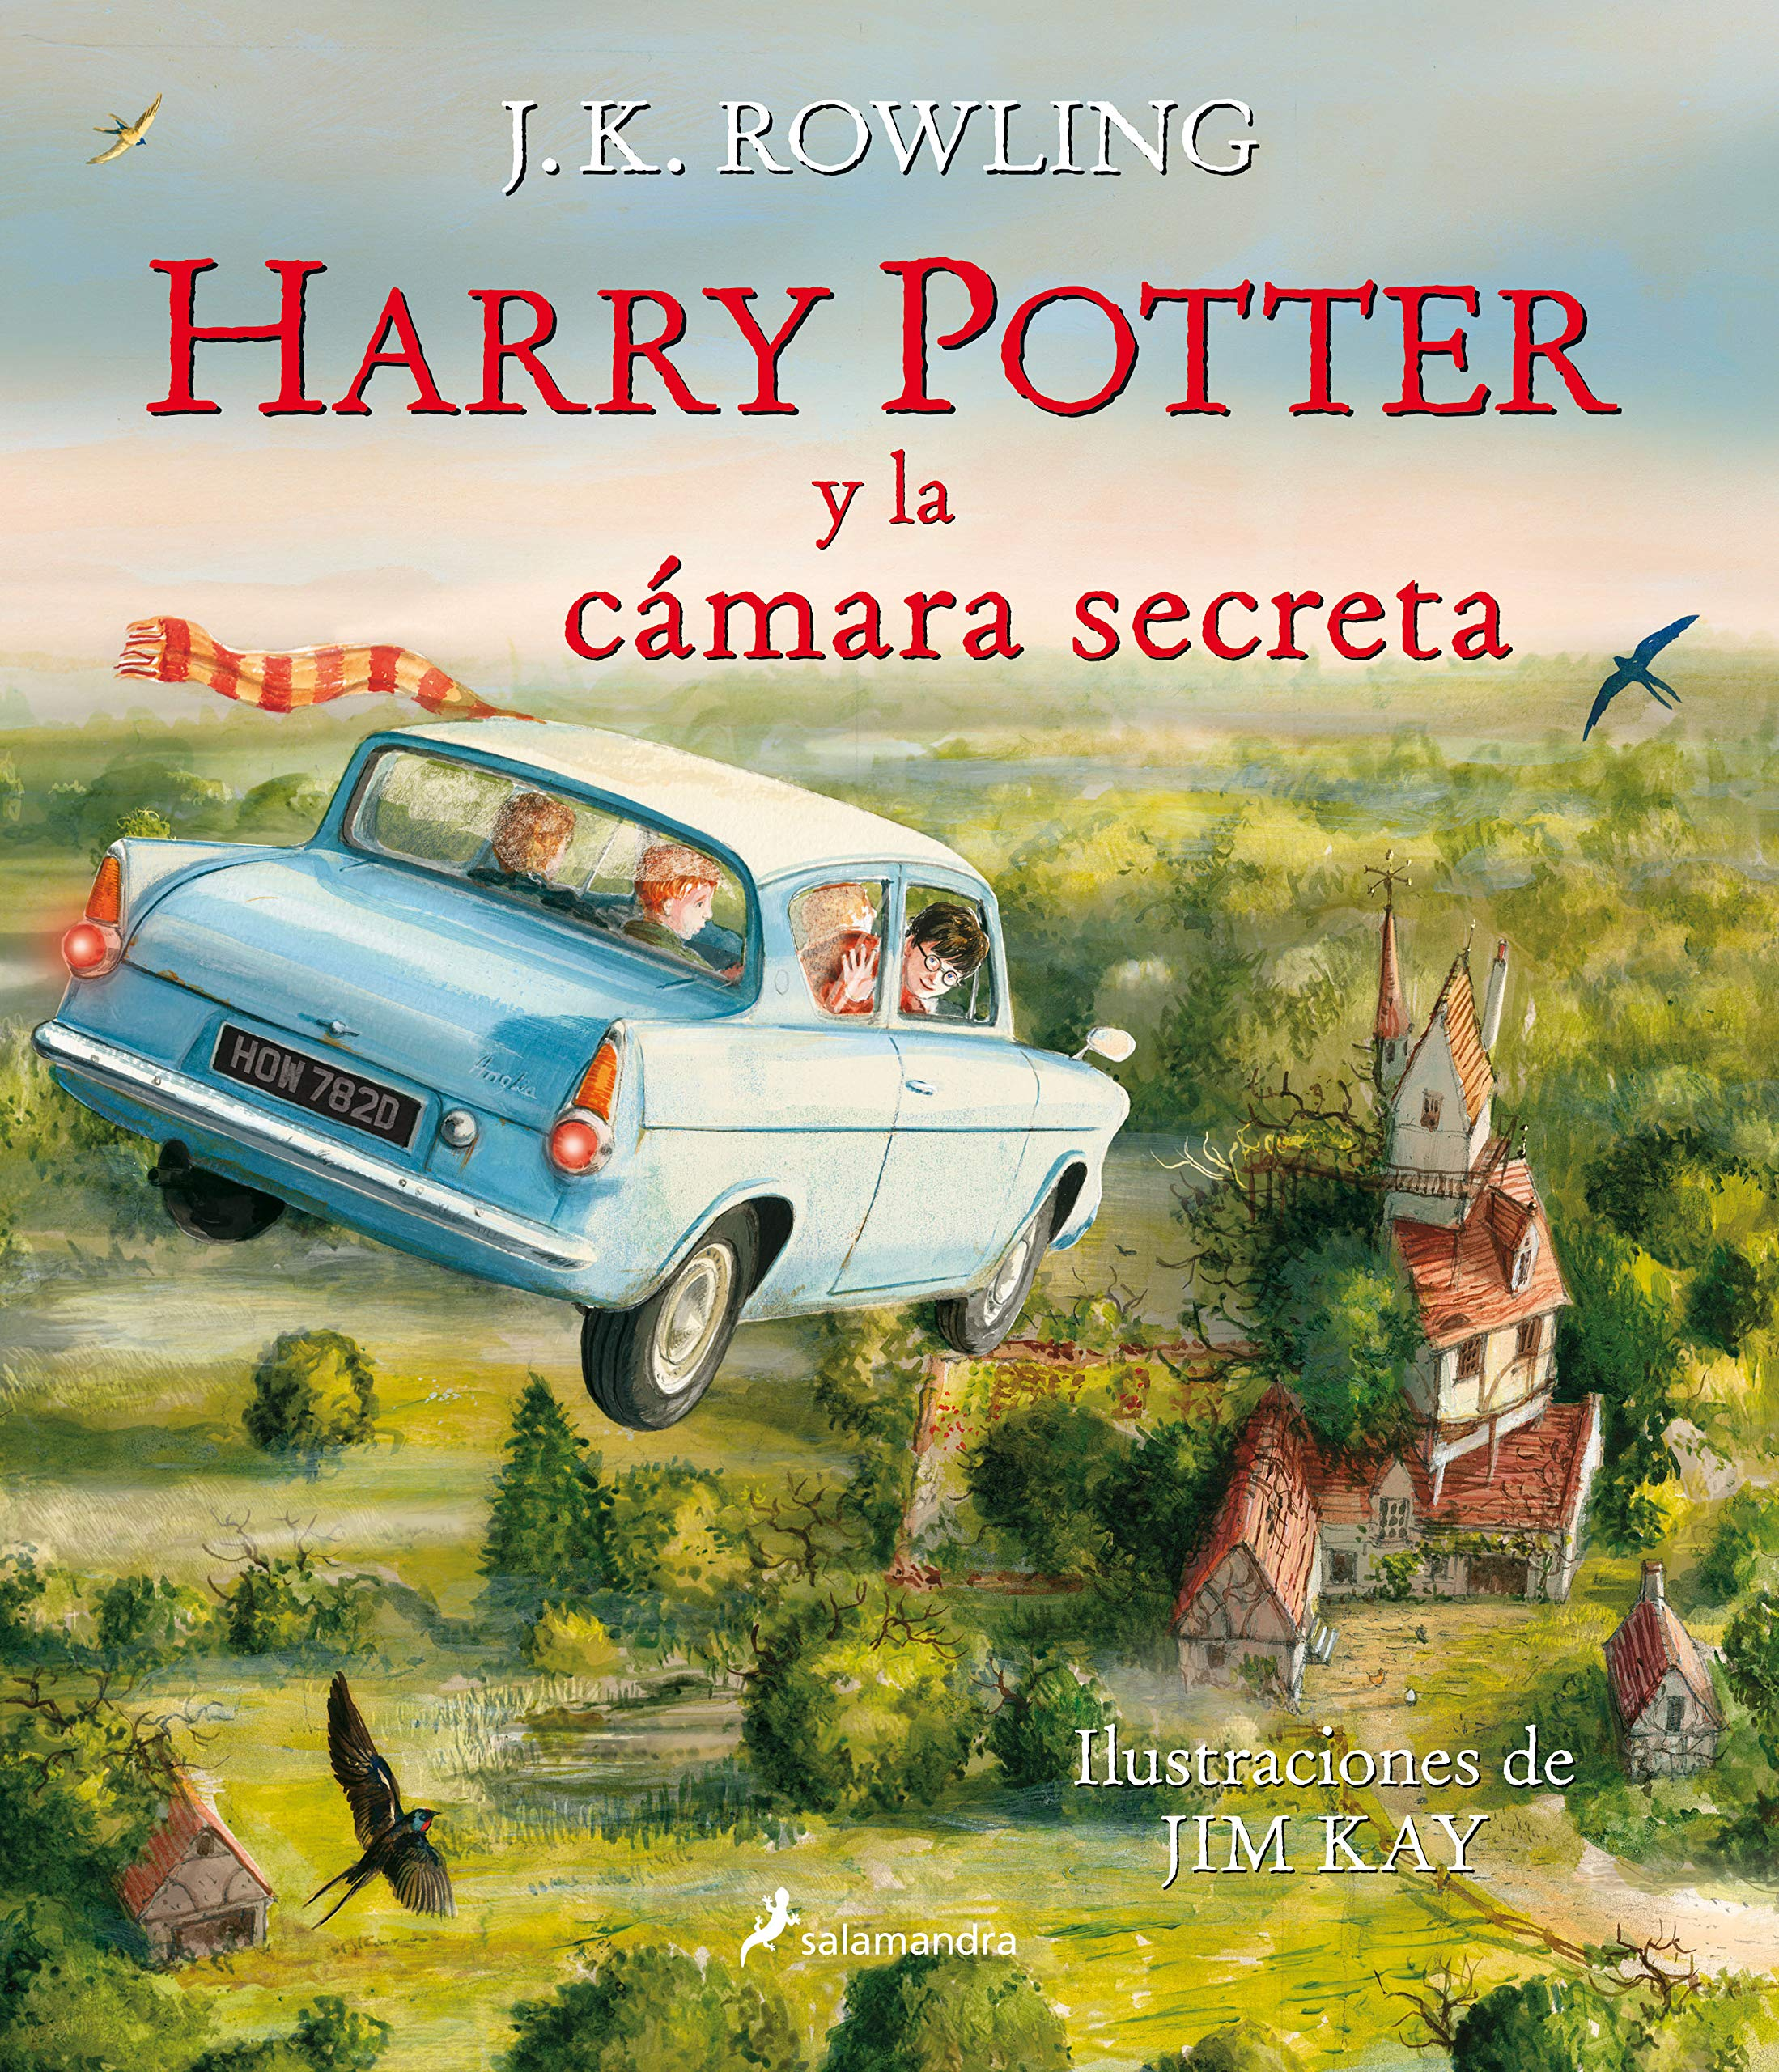 Harry Potter Y La Cámara Secreta Harry Potter Edición Ilustrada 2 Spanish Edition Rowling J K 9788498387636 Books